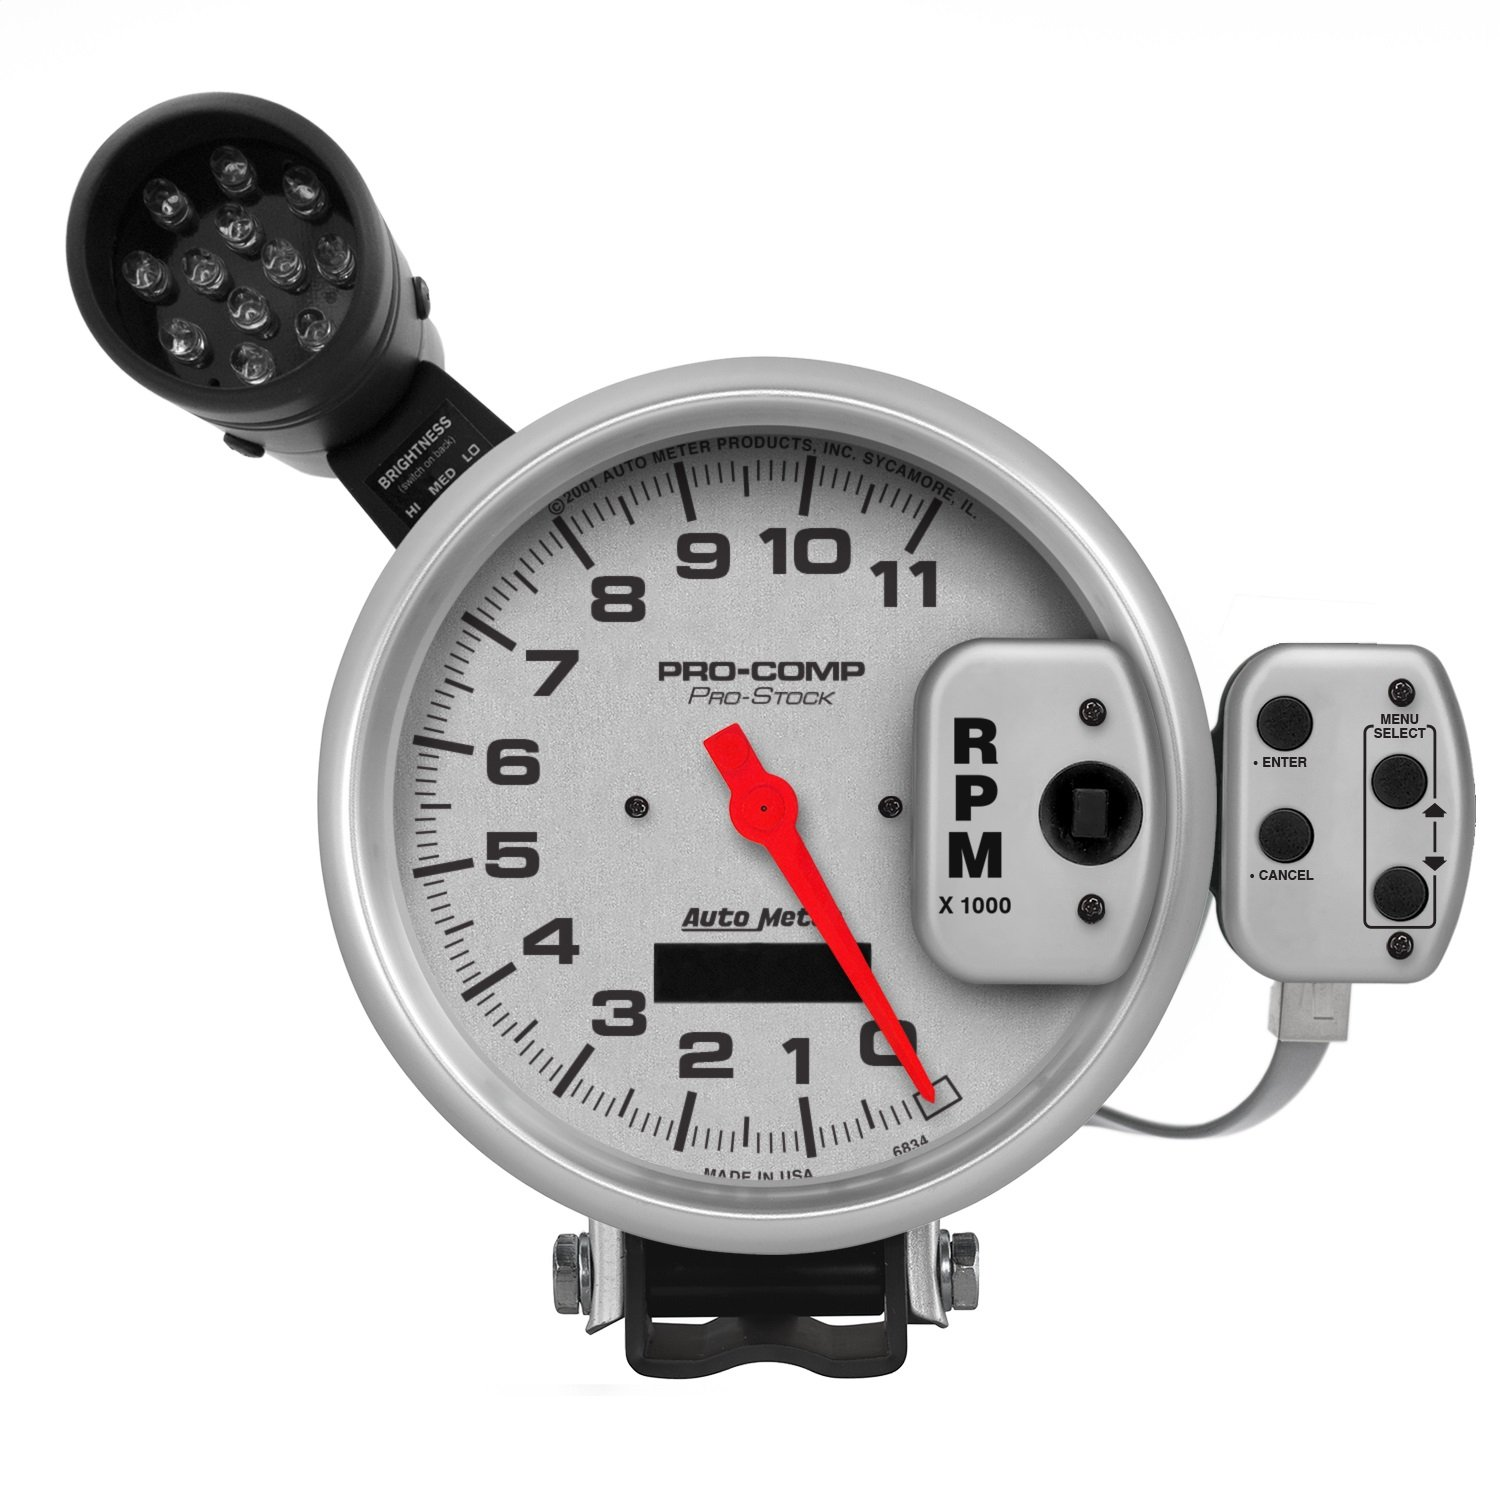 autogage tachometer item aut233902 the auto gage tach series is oneamazon com auto meter 6834 pro stock silver tachometer automotiveautogage tachometer item aut233902 the auto gage